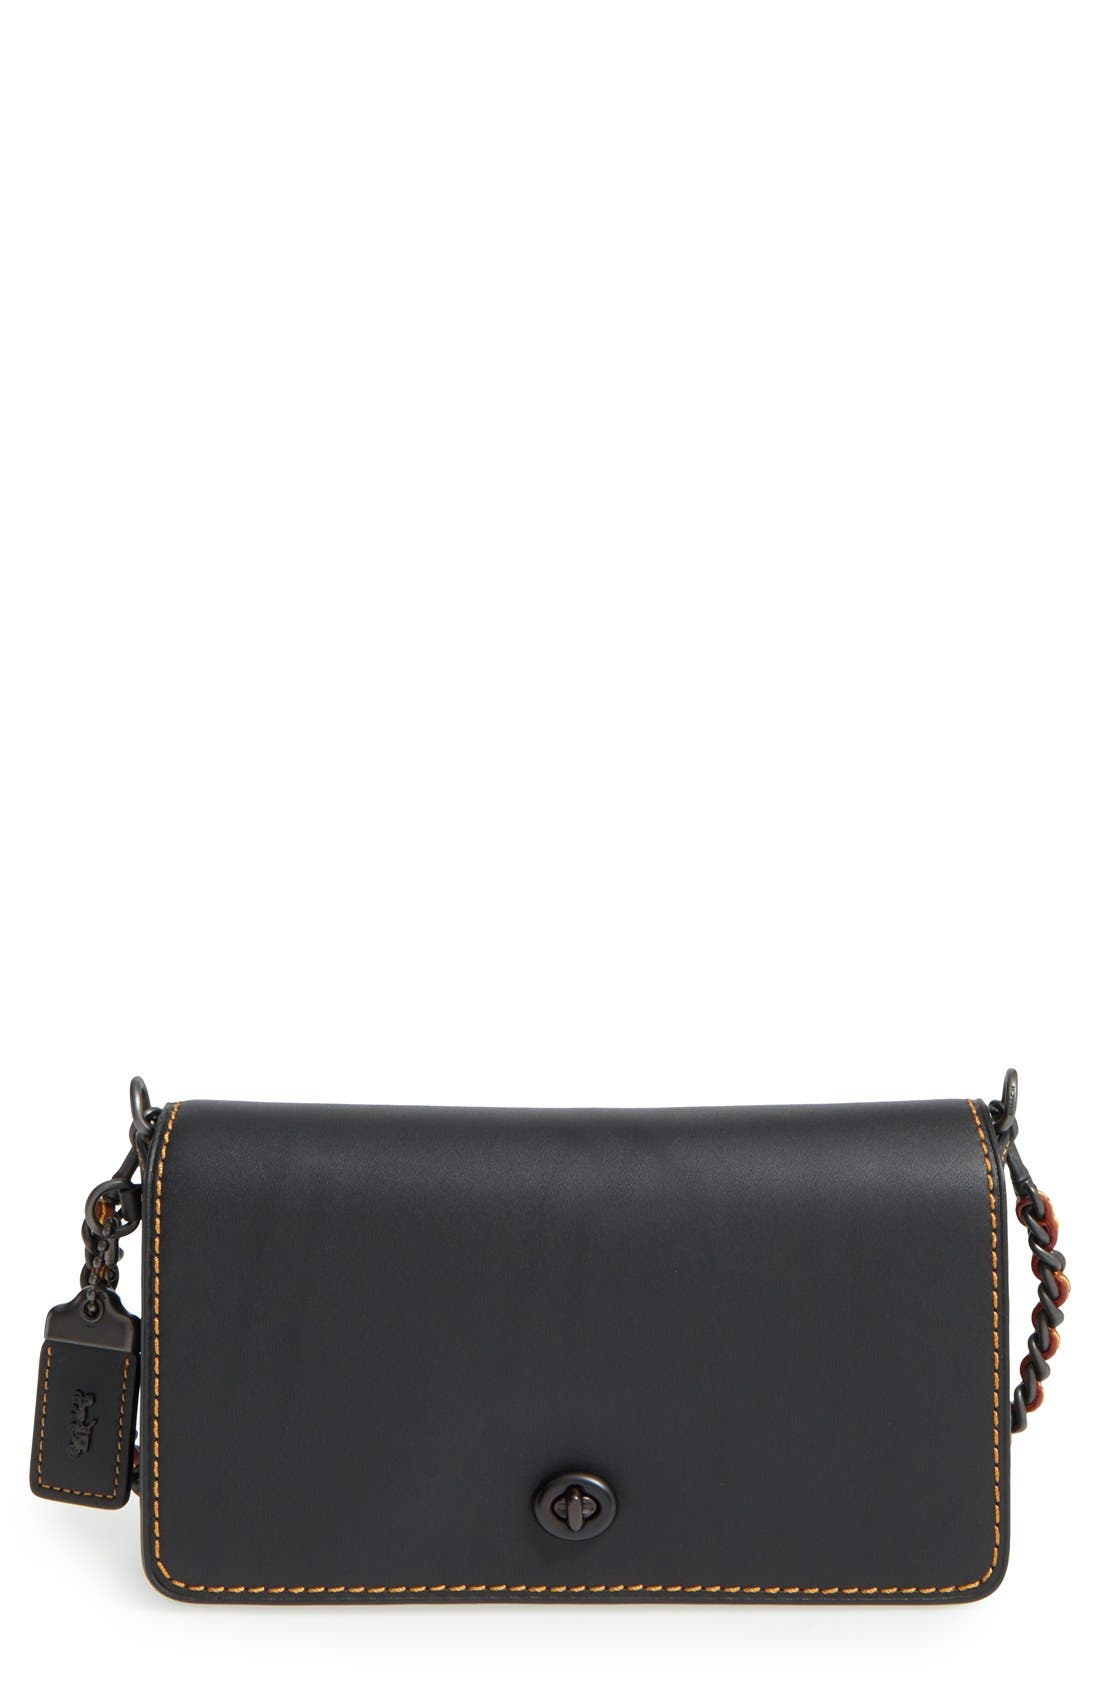 'Dinky' Leather Crossbody Bag,                             Main thumbnail 1, color,